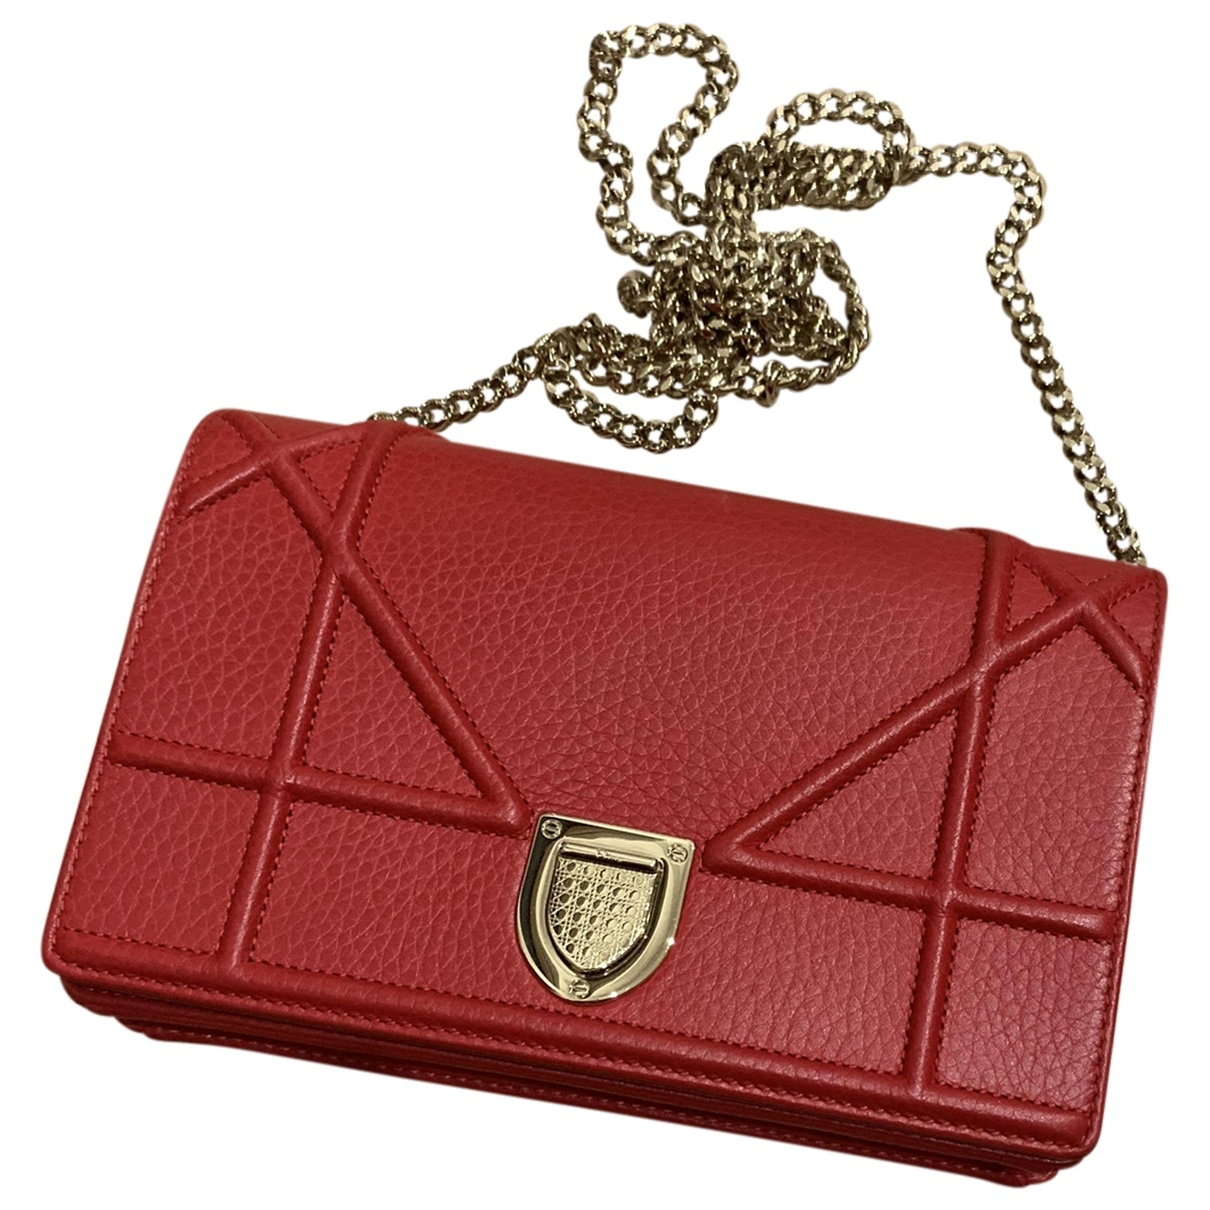 Dior Diorama Red Leather Clutch bag for Women \N